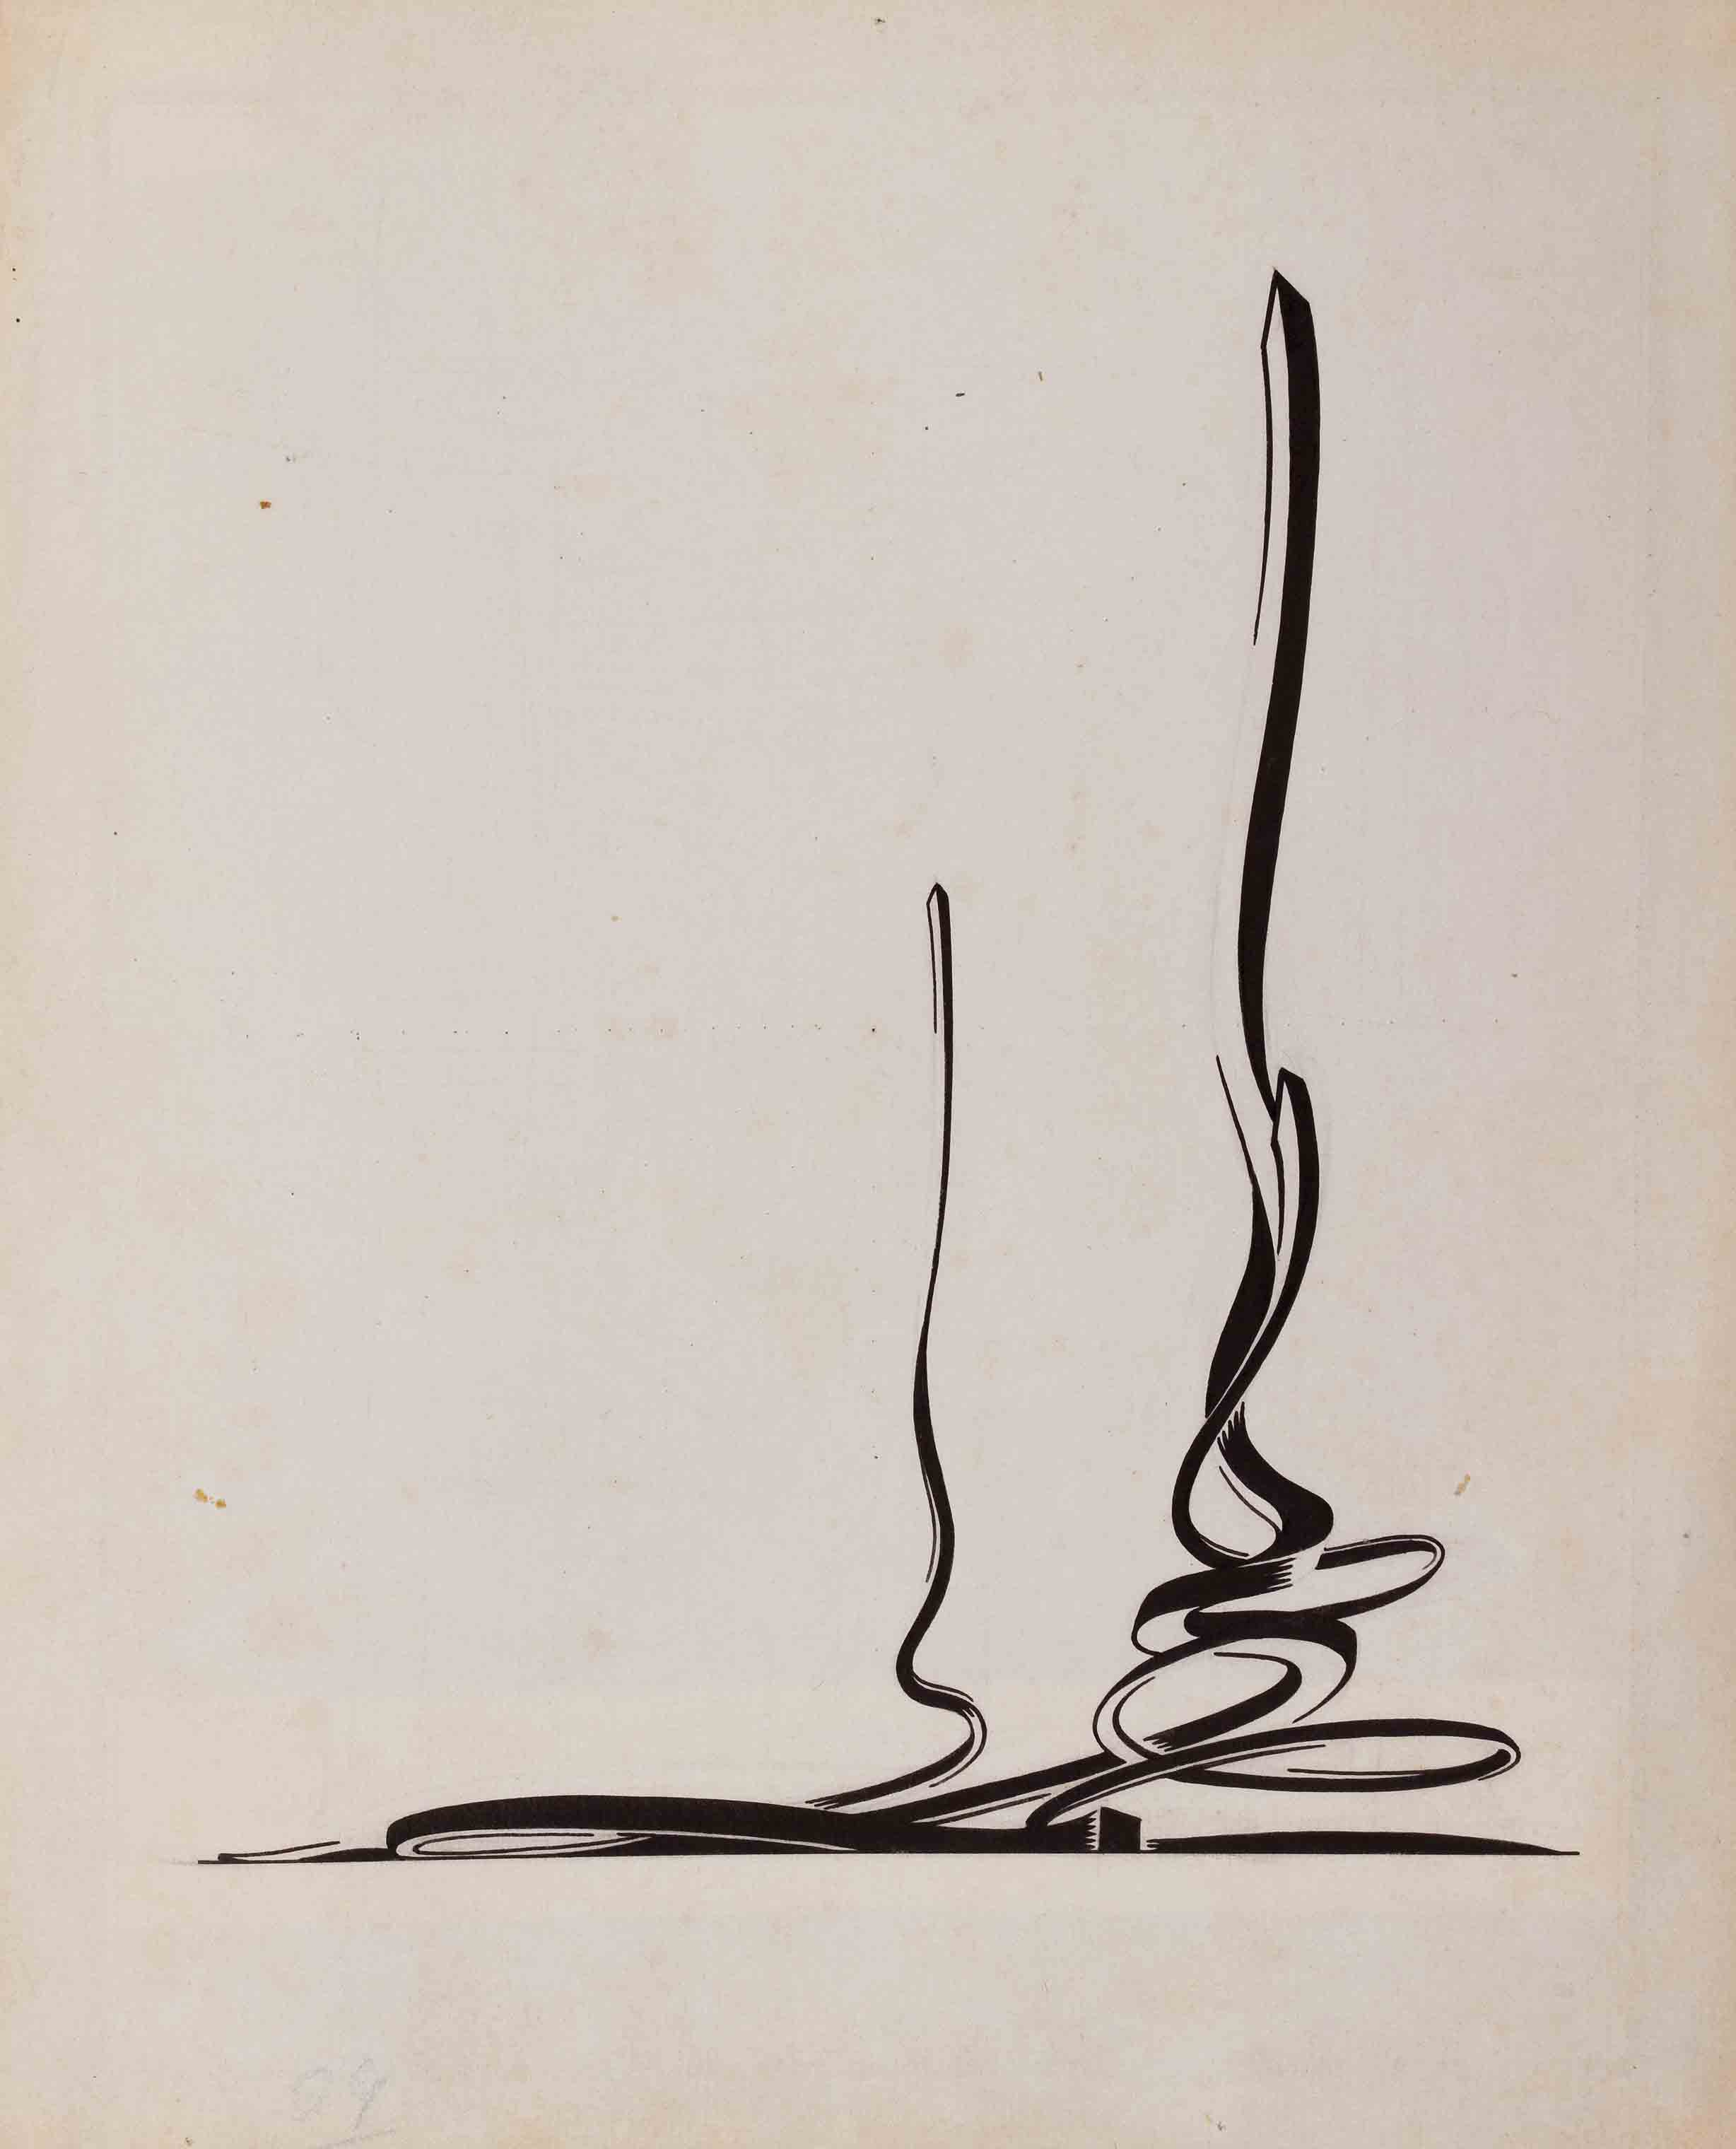 Composition with Dynamic Features and a Complicated Curving Body, late 1920s - Yakov Chernikhov